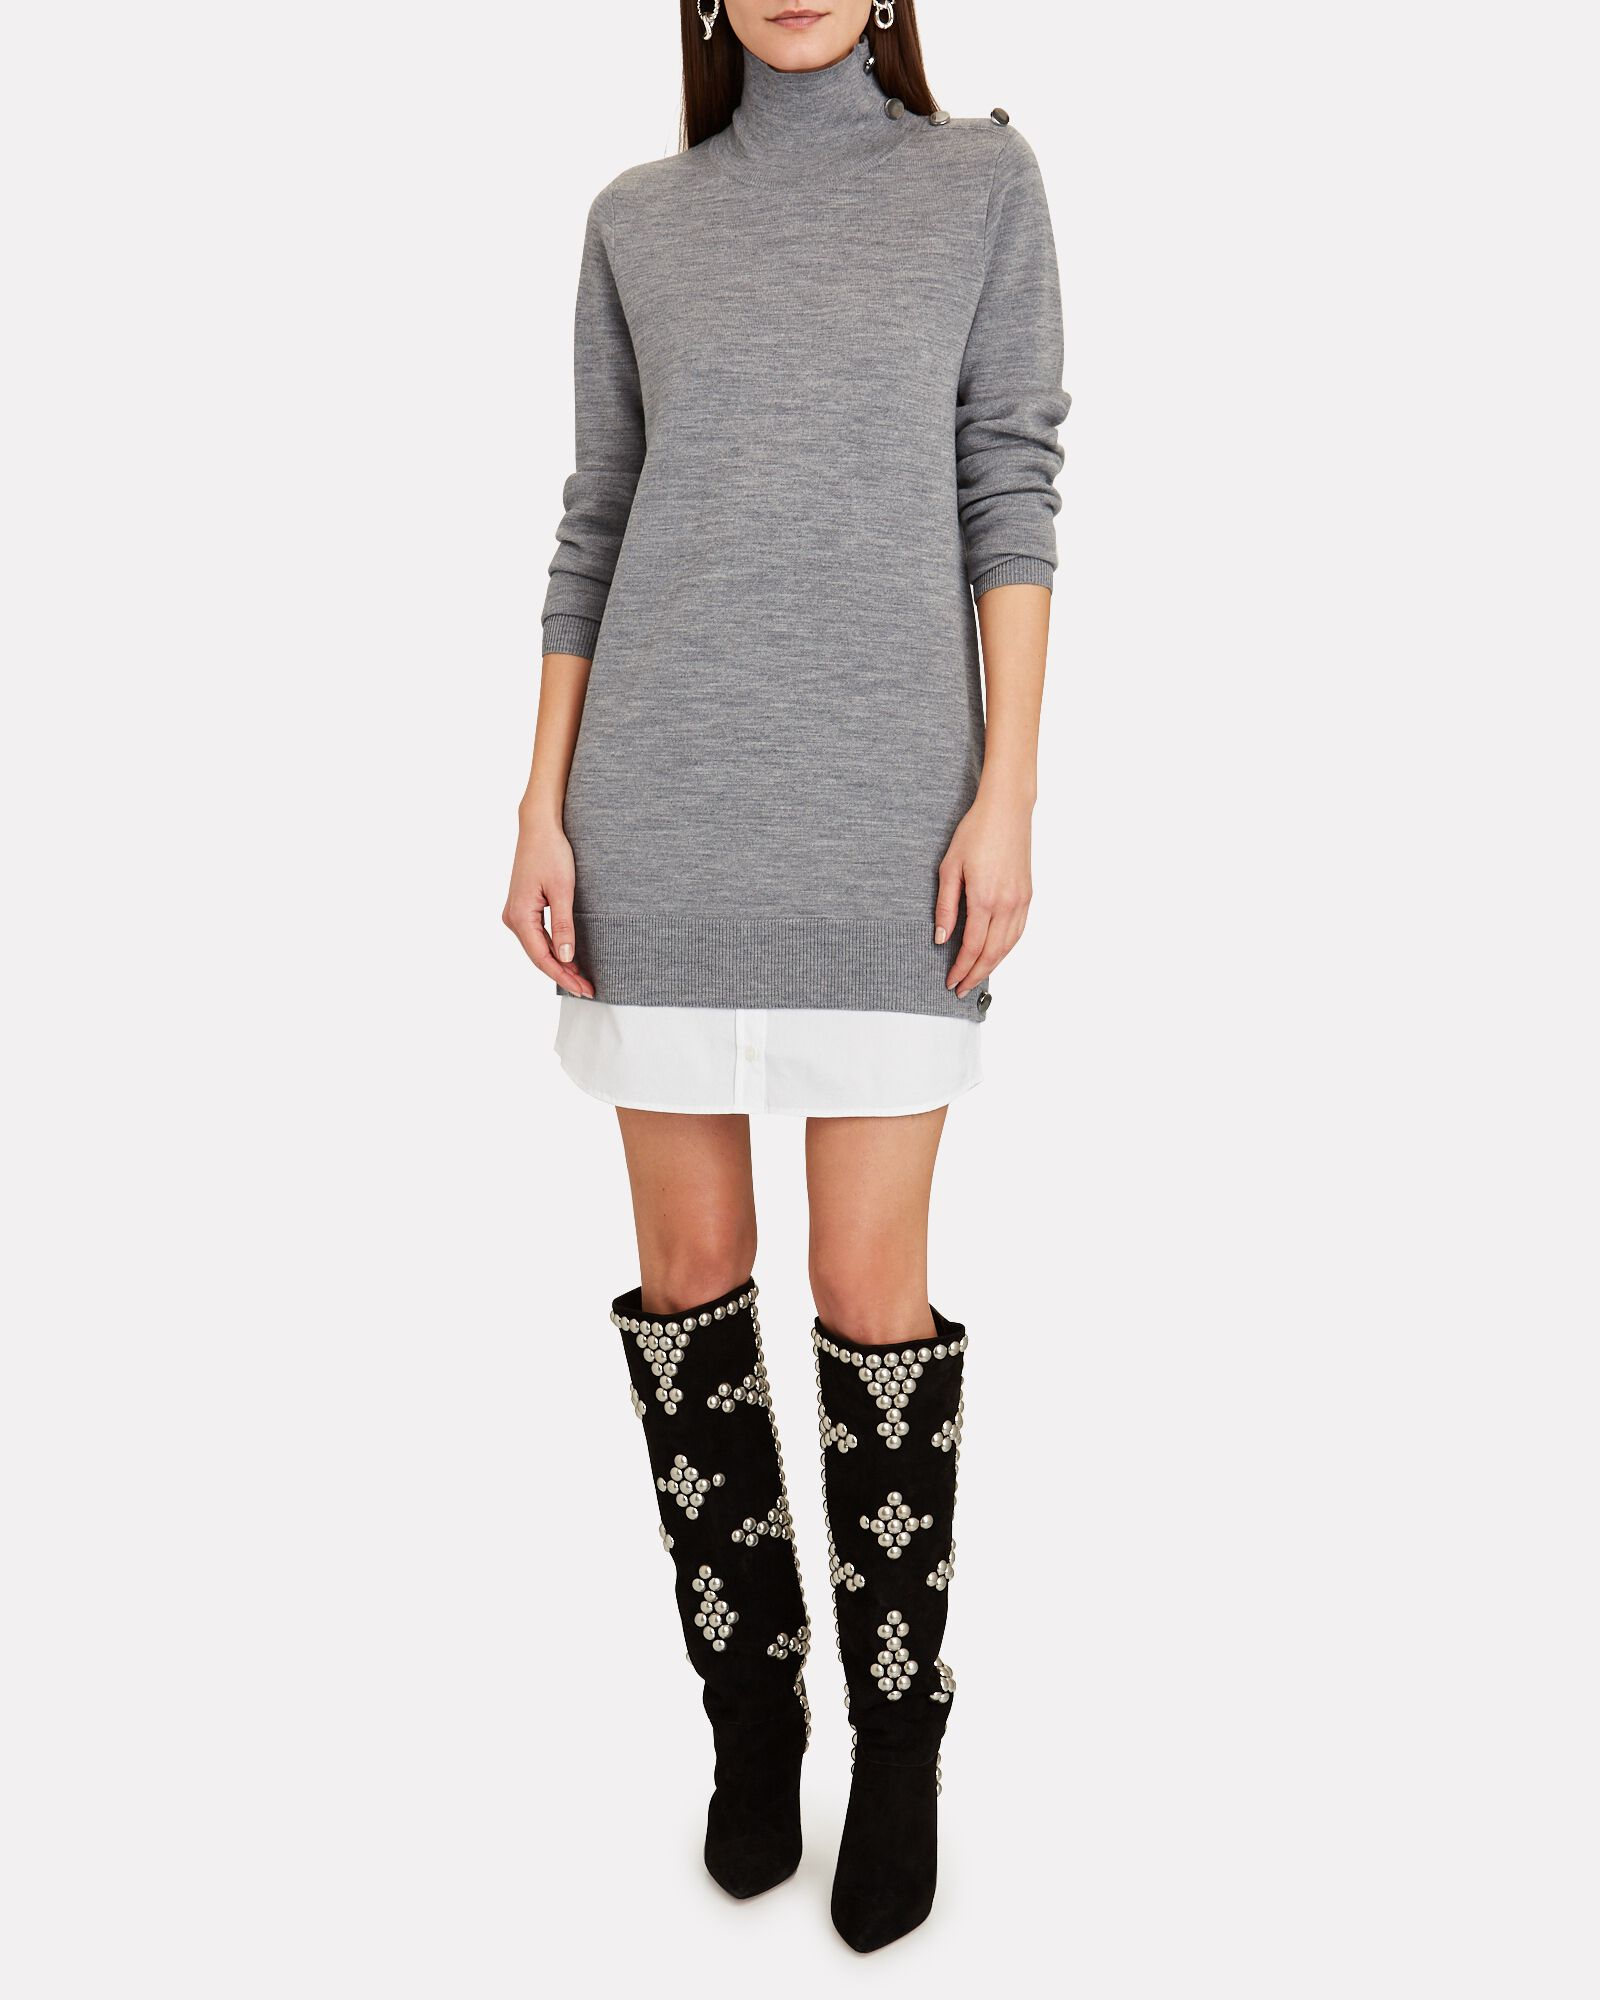 Soval Layered Sweater Dress, GREY, hi-res